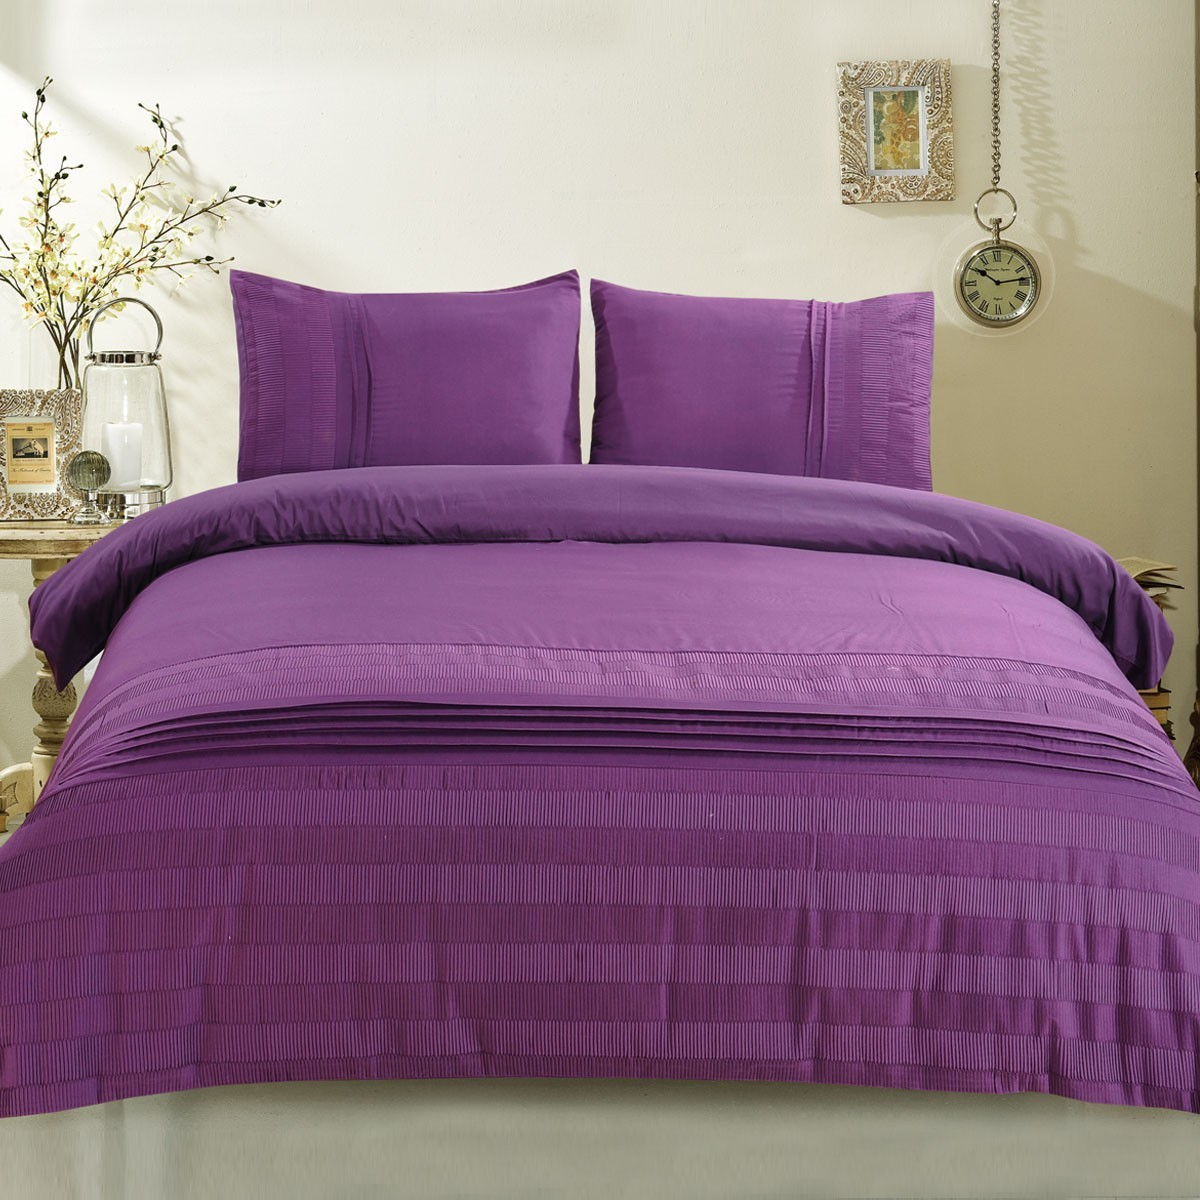 3 Piece Purple Duvet Cover Set Dk Lj013 Decoraport Canada